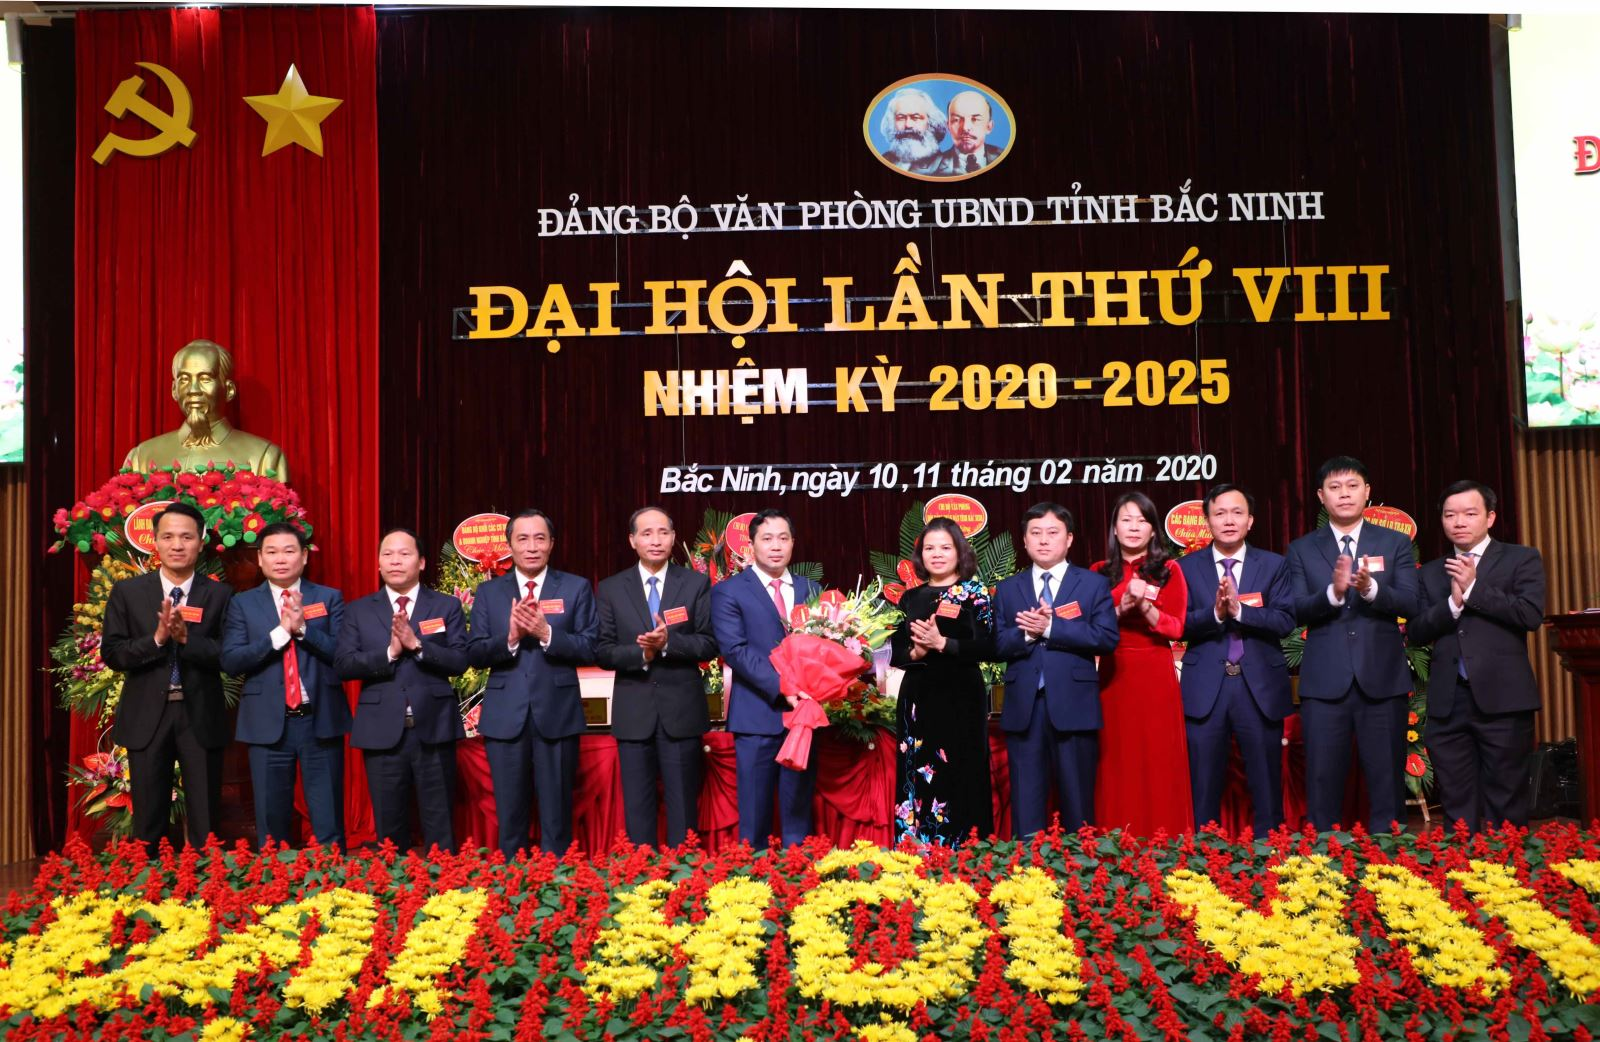 Bac Ninh provincial People's Committee Office Party Congress chosen as model congress